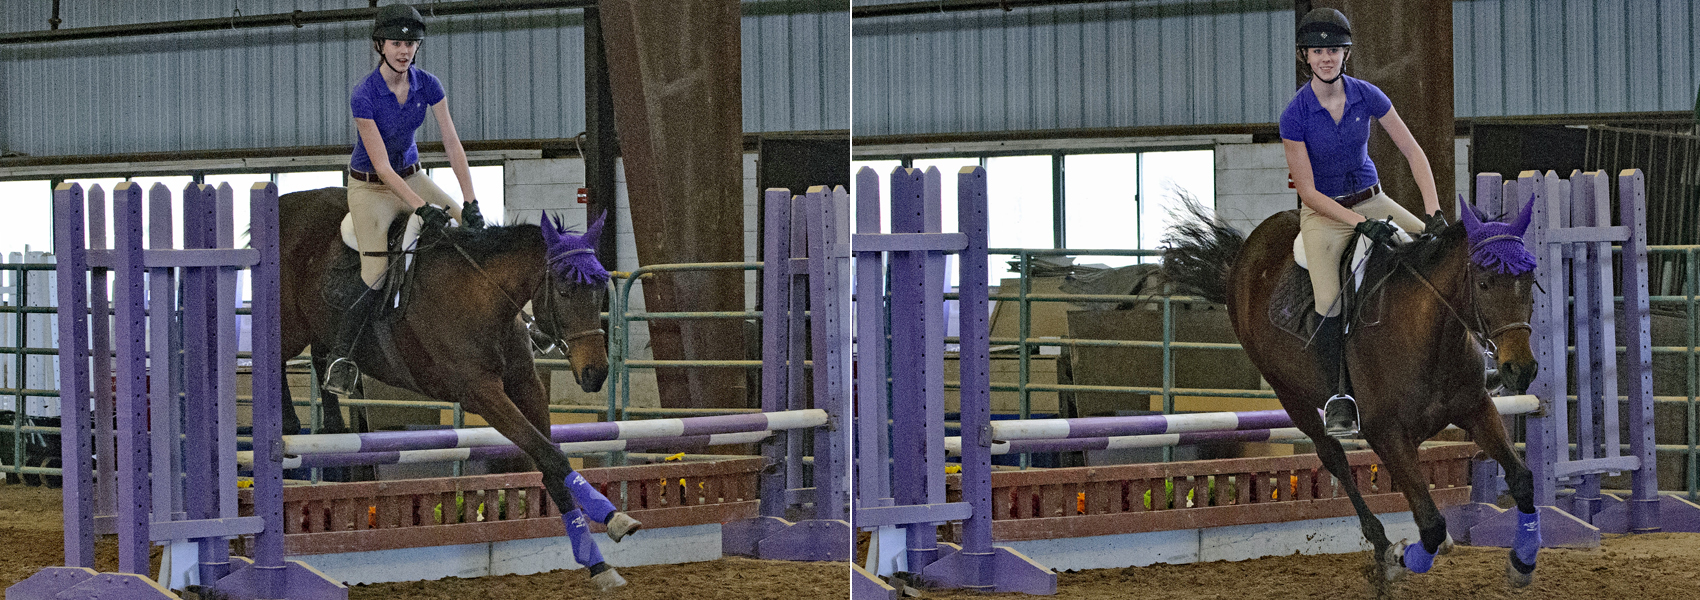 Rider and horse jump over rails